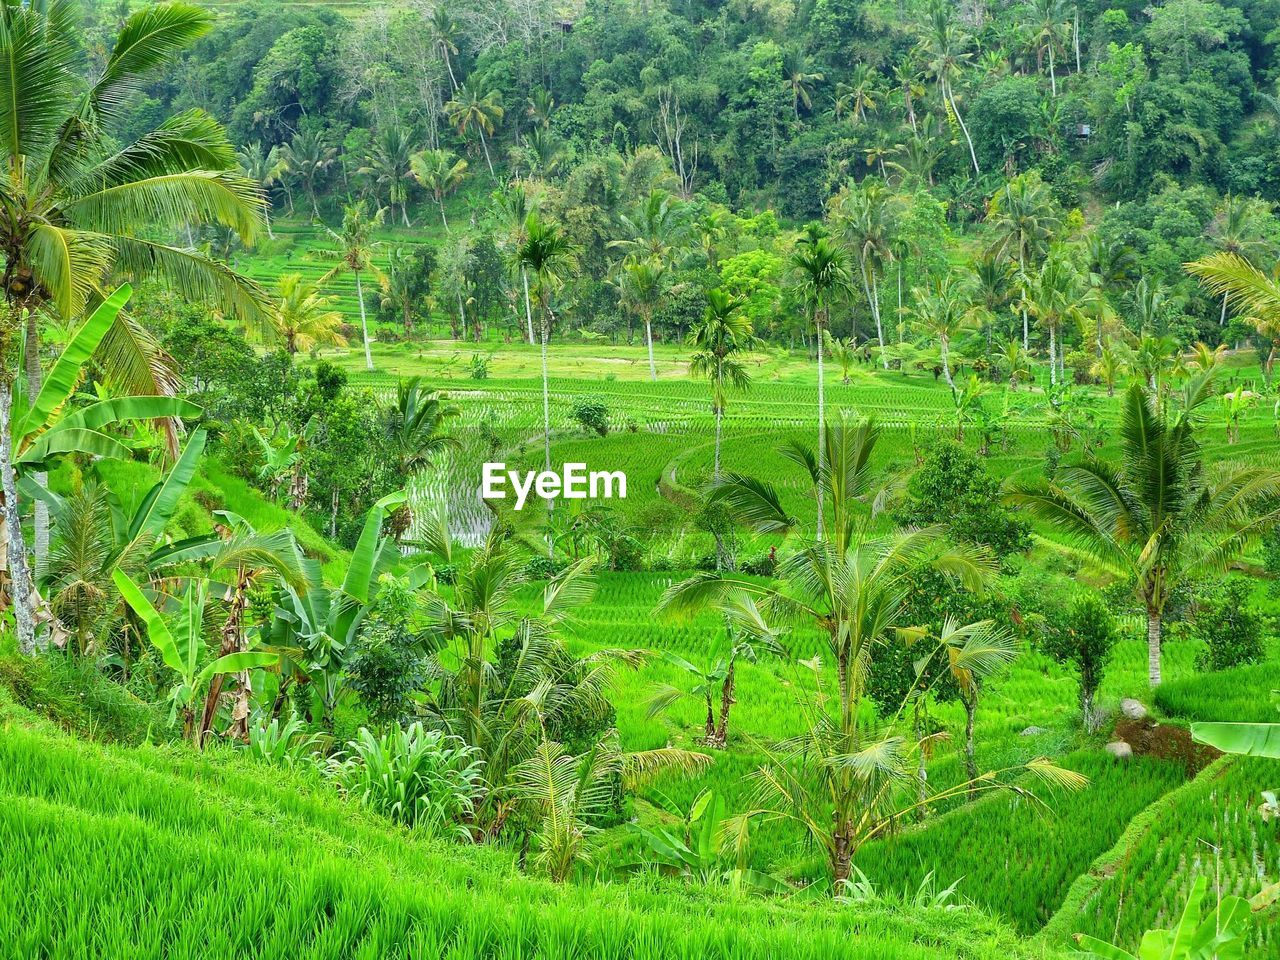 grass, nature, growth, green color, field, plant, no people, beauty in nature, tranquil scene, outdoors, tranquility, agriculture, lush foliage, landscape, day, tree, scenics, leaf, rice paddy, forest, animal themes